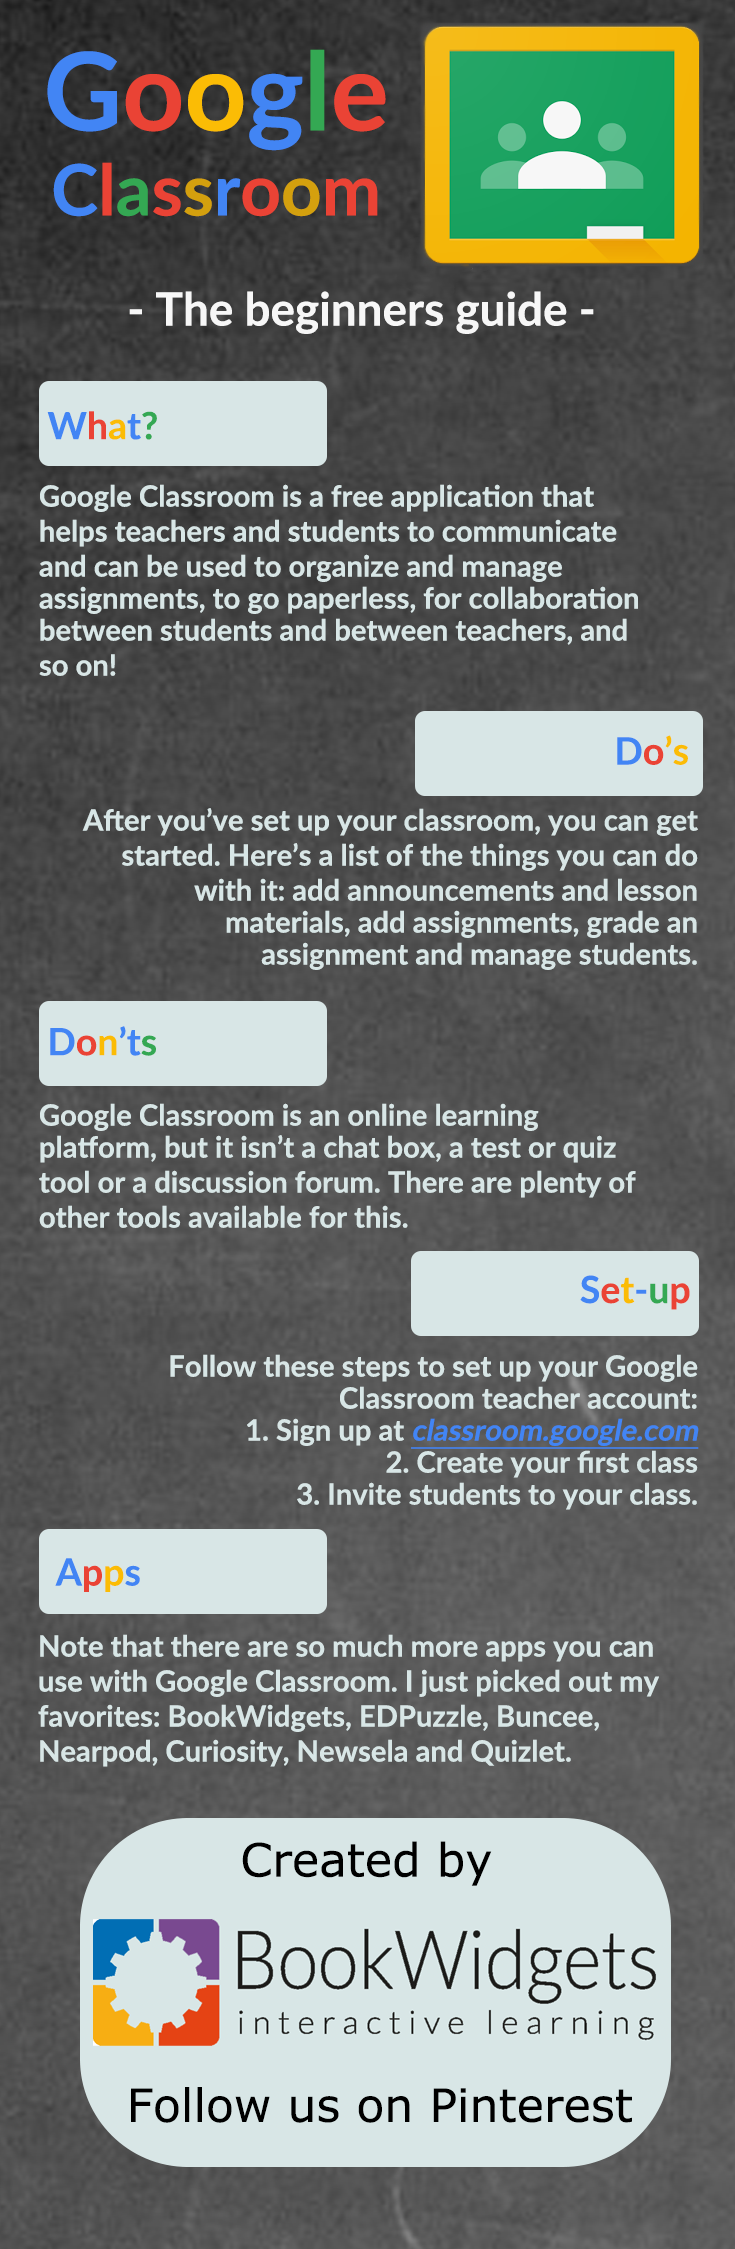 Google Clasroom guide